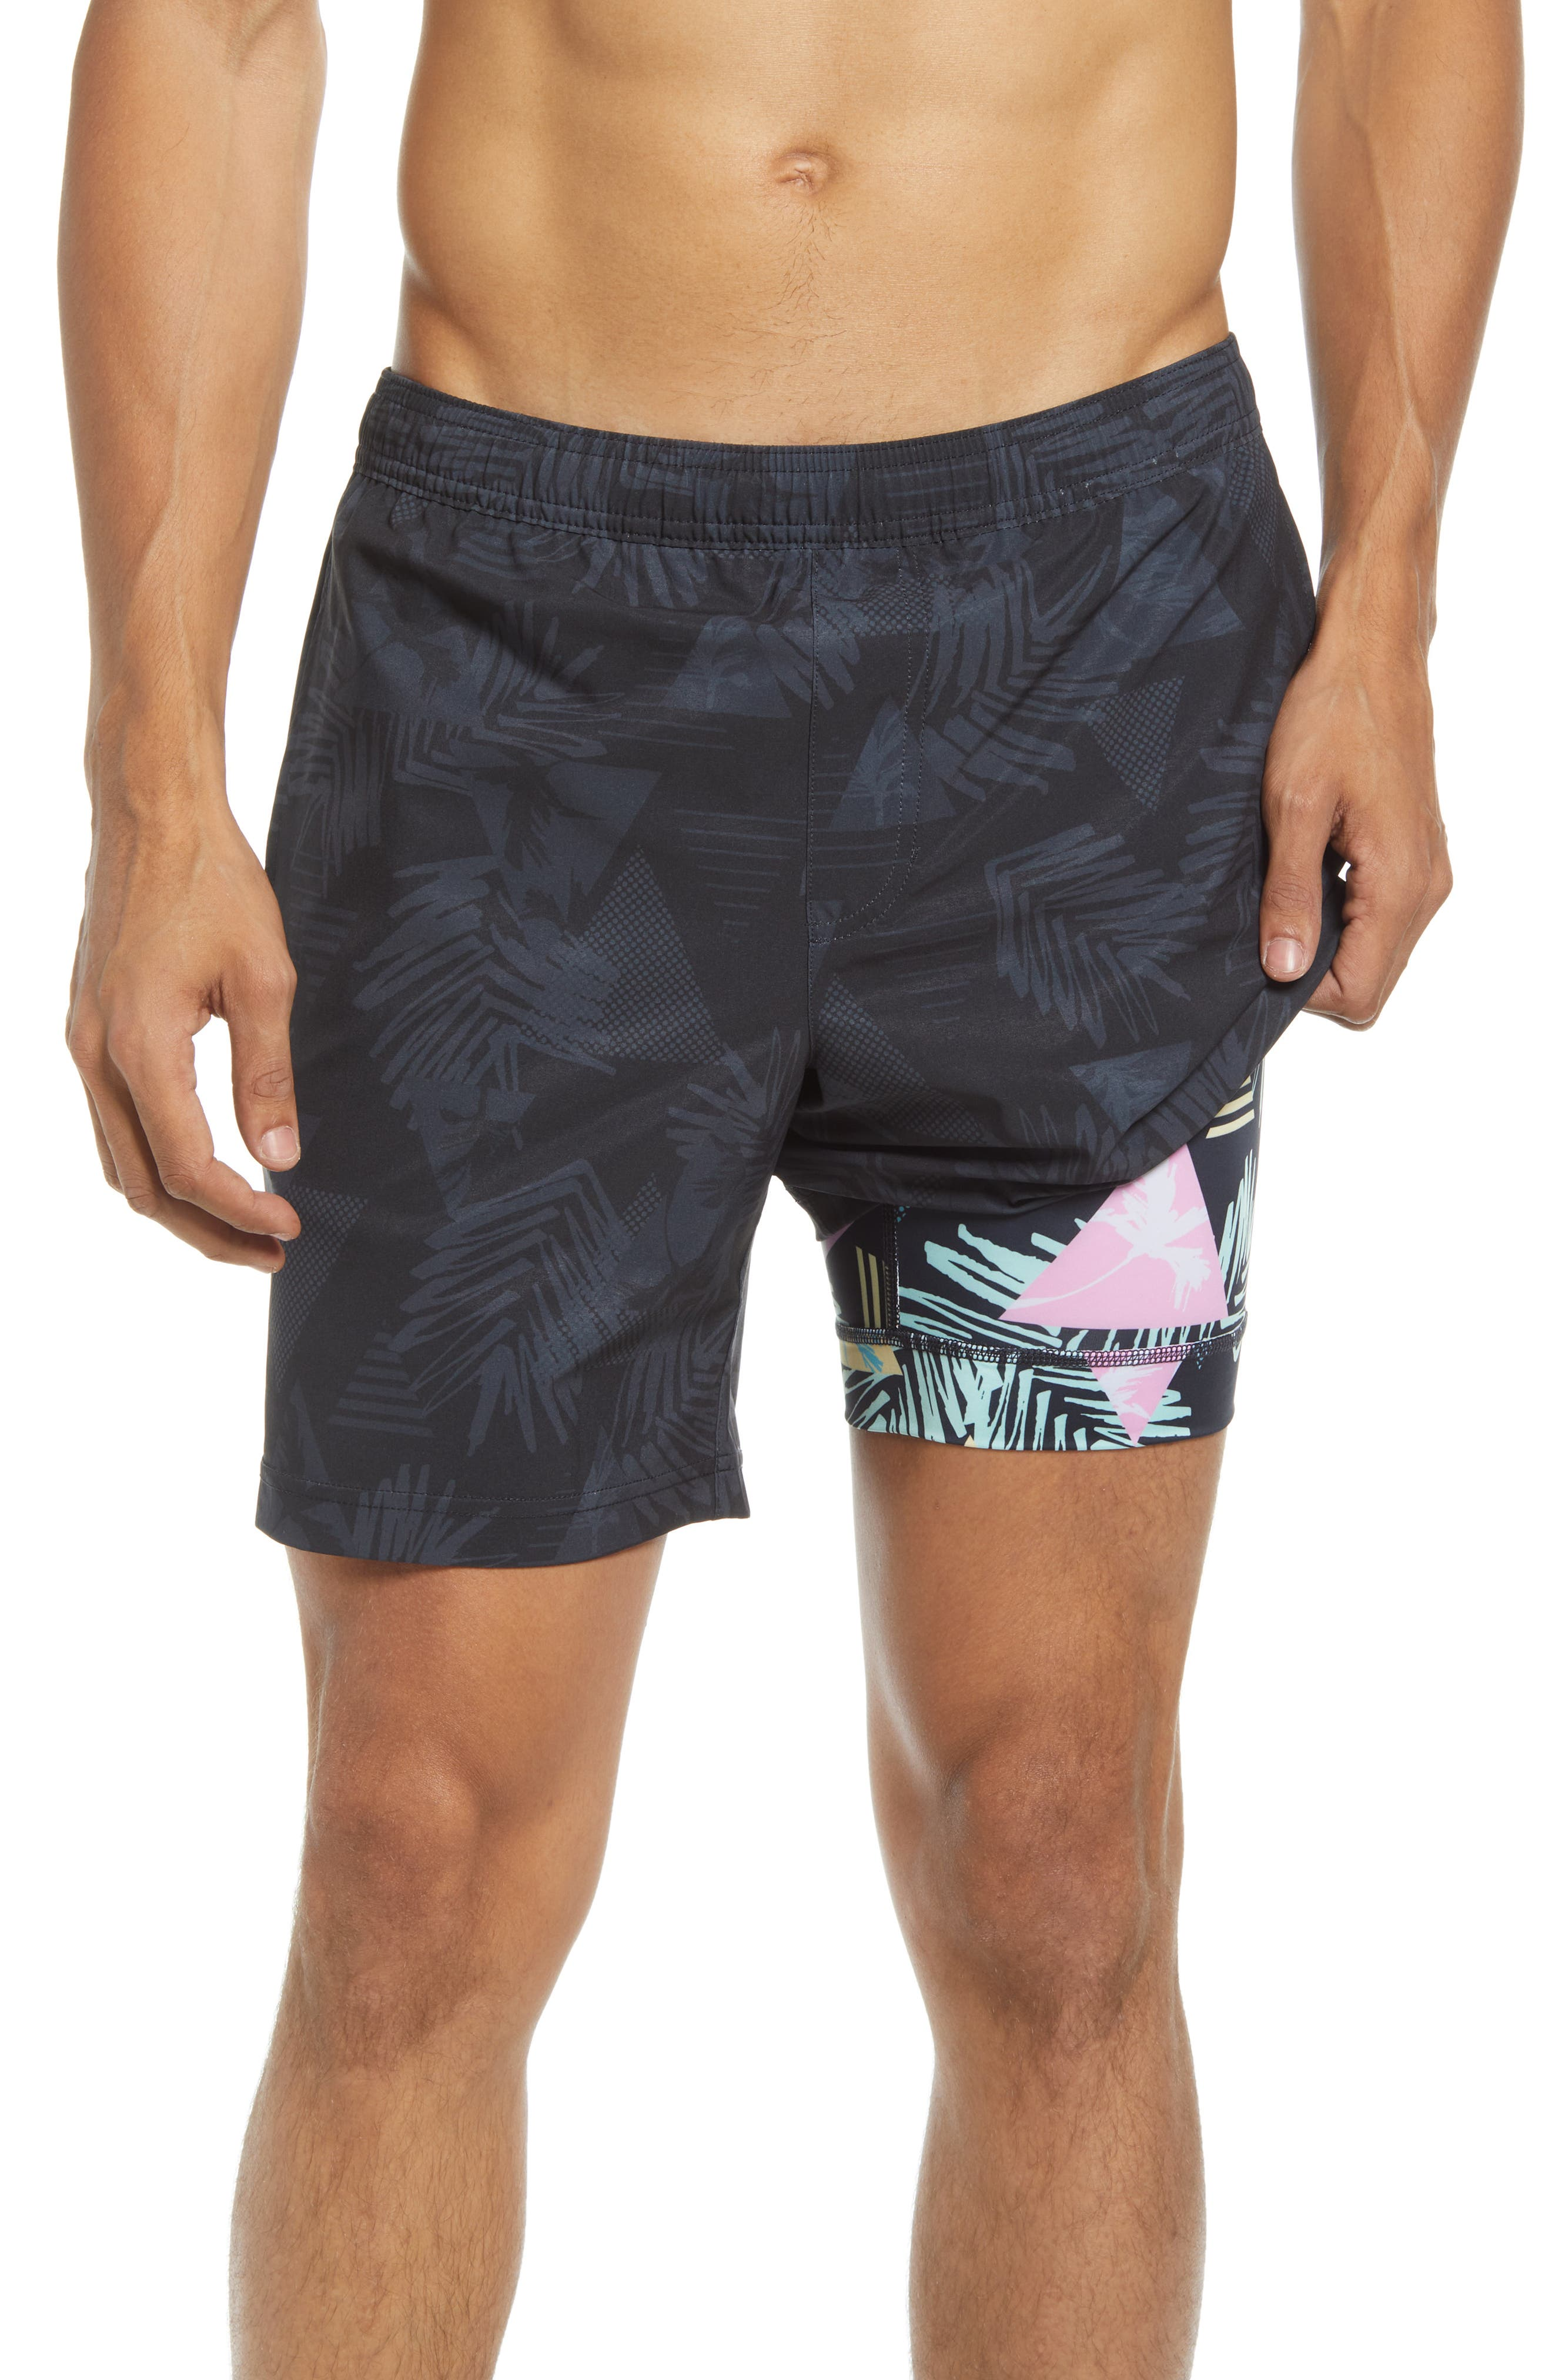 The Palm Dot Coms Woven Shorts